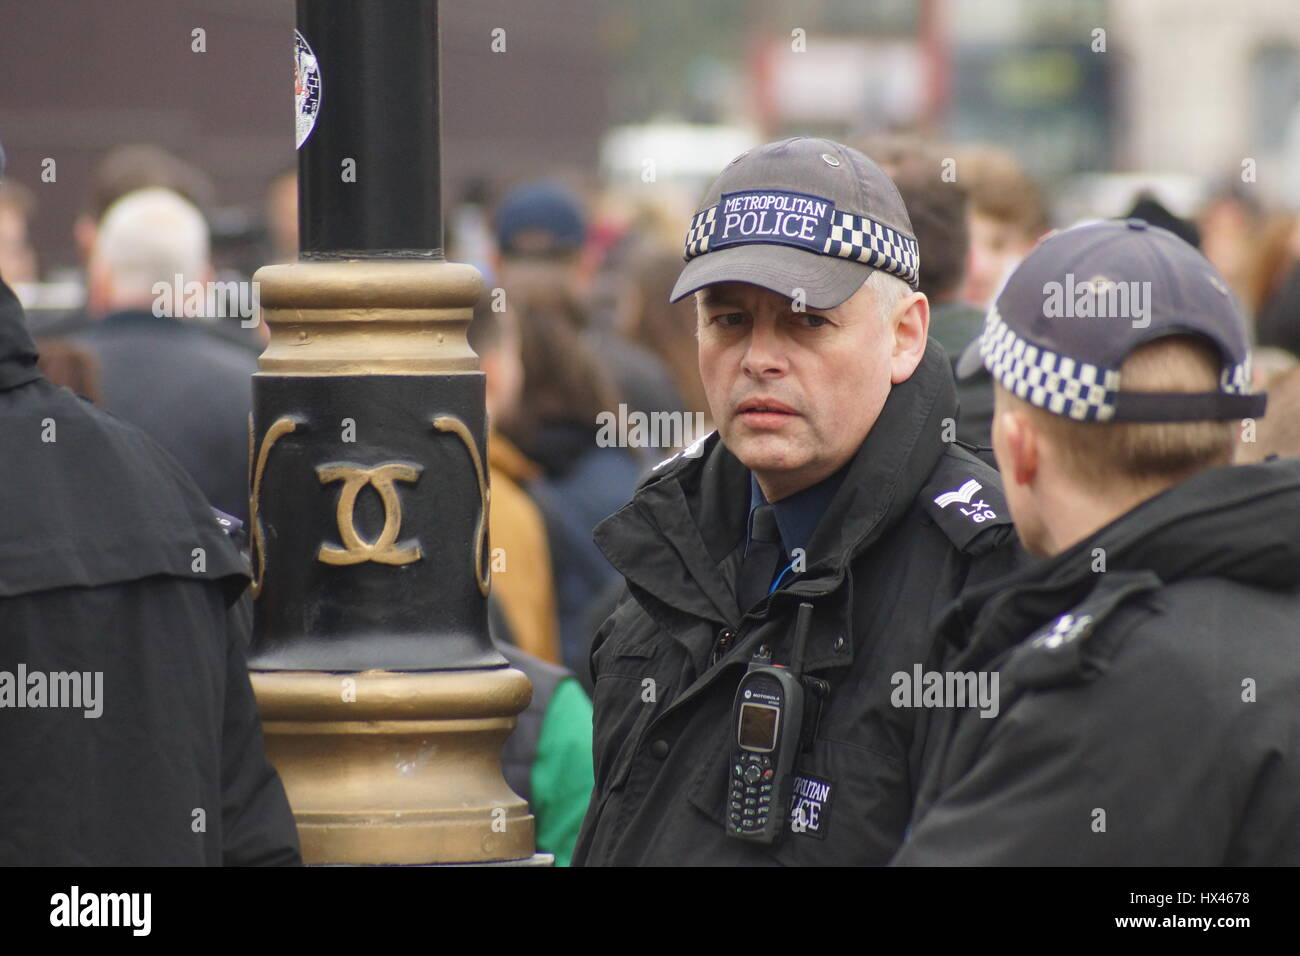 London, UK. 23rd Mar, 2017. Police pay tribute at the scene.The scene outside the Houses of Parliament in the wake - Stock Image